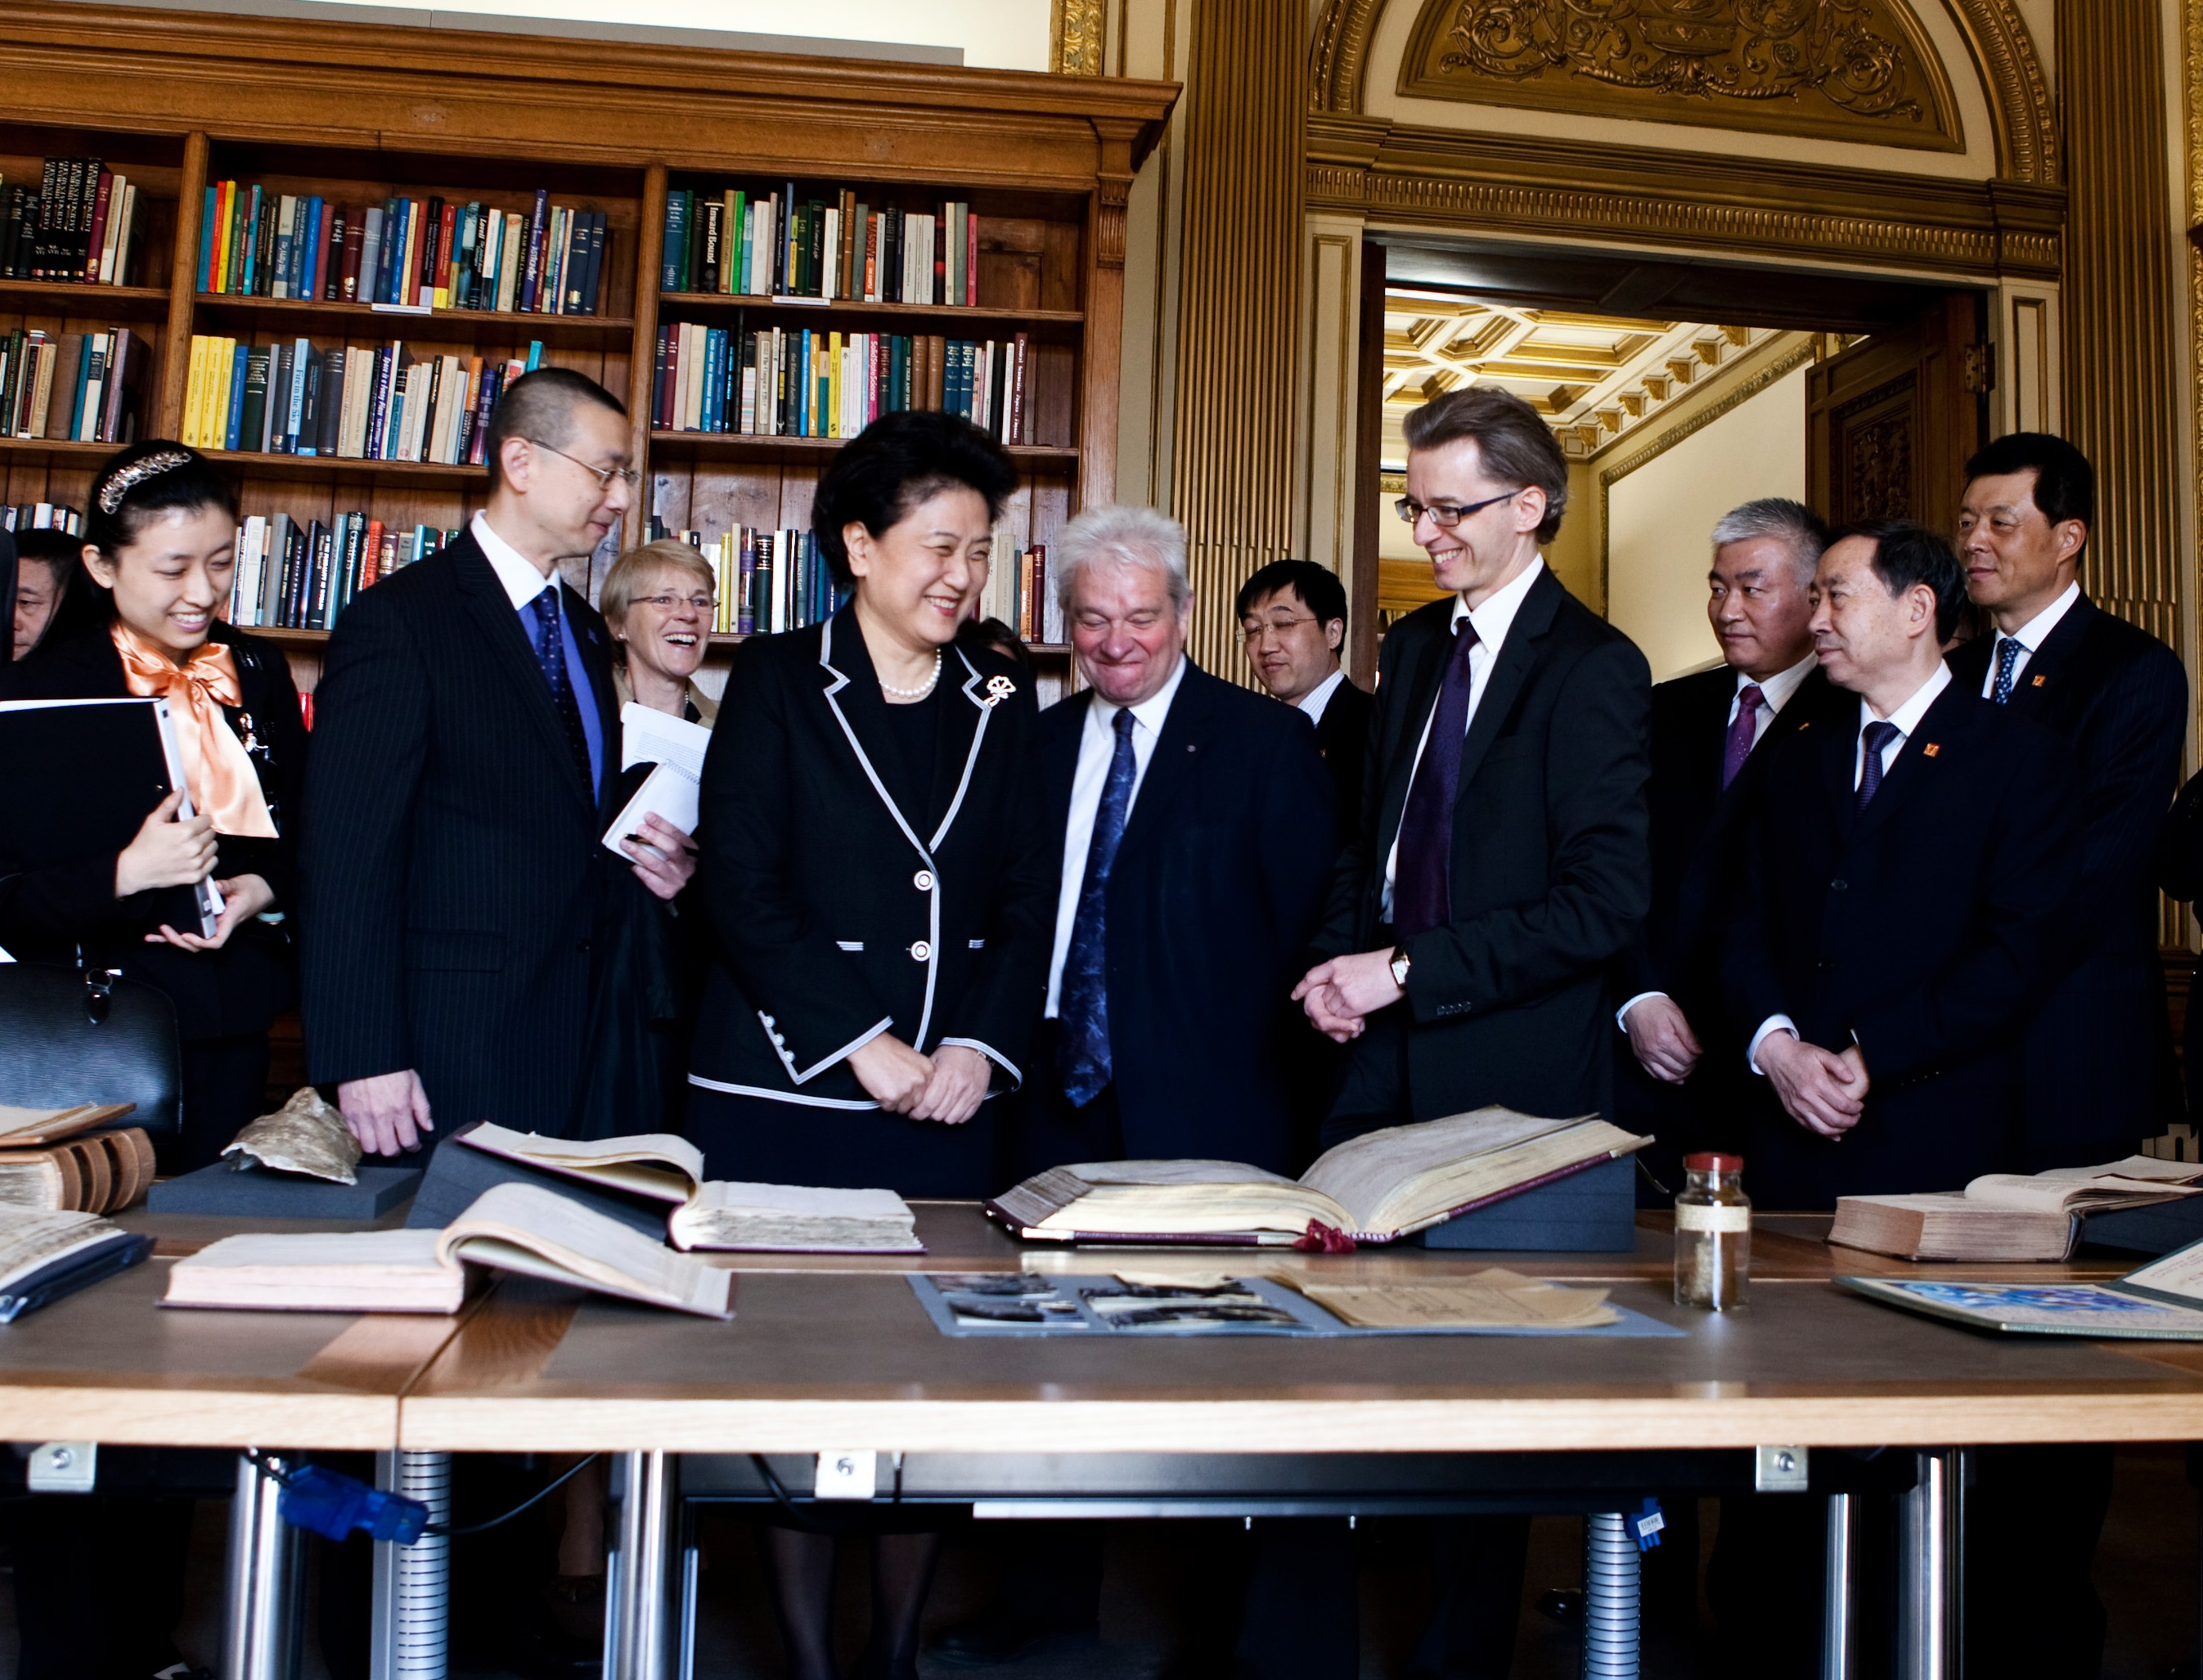 Liu Yandong visits the Royal Society in 2013